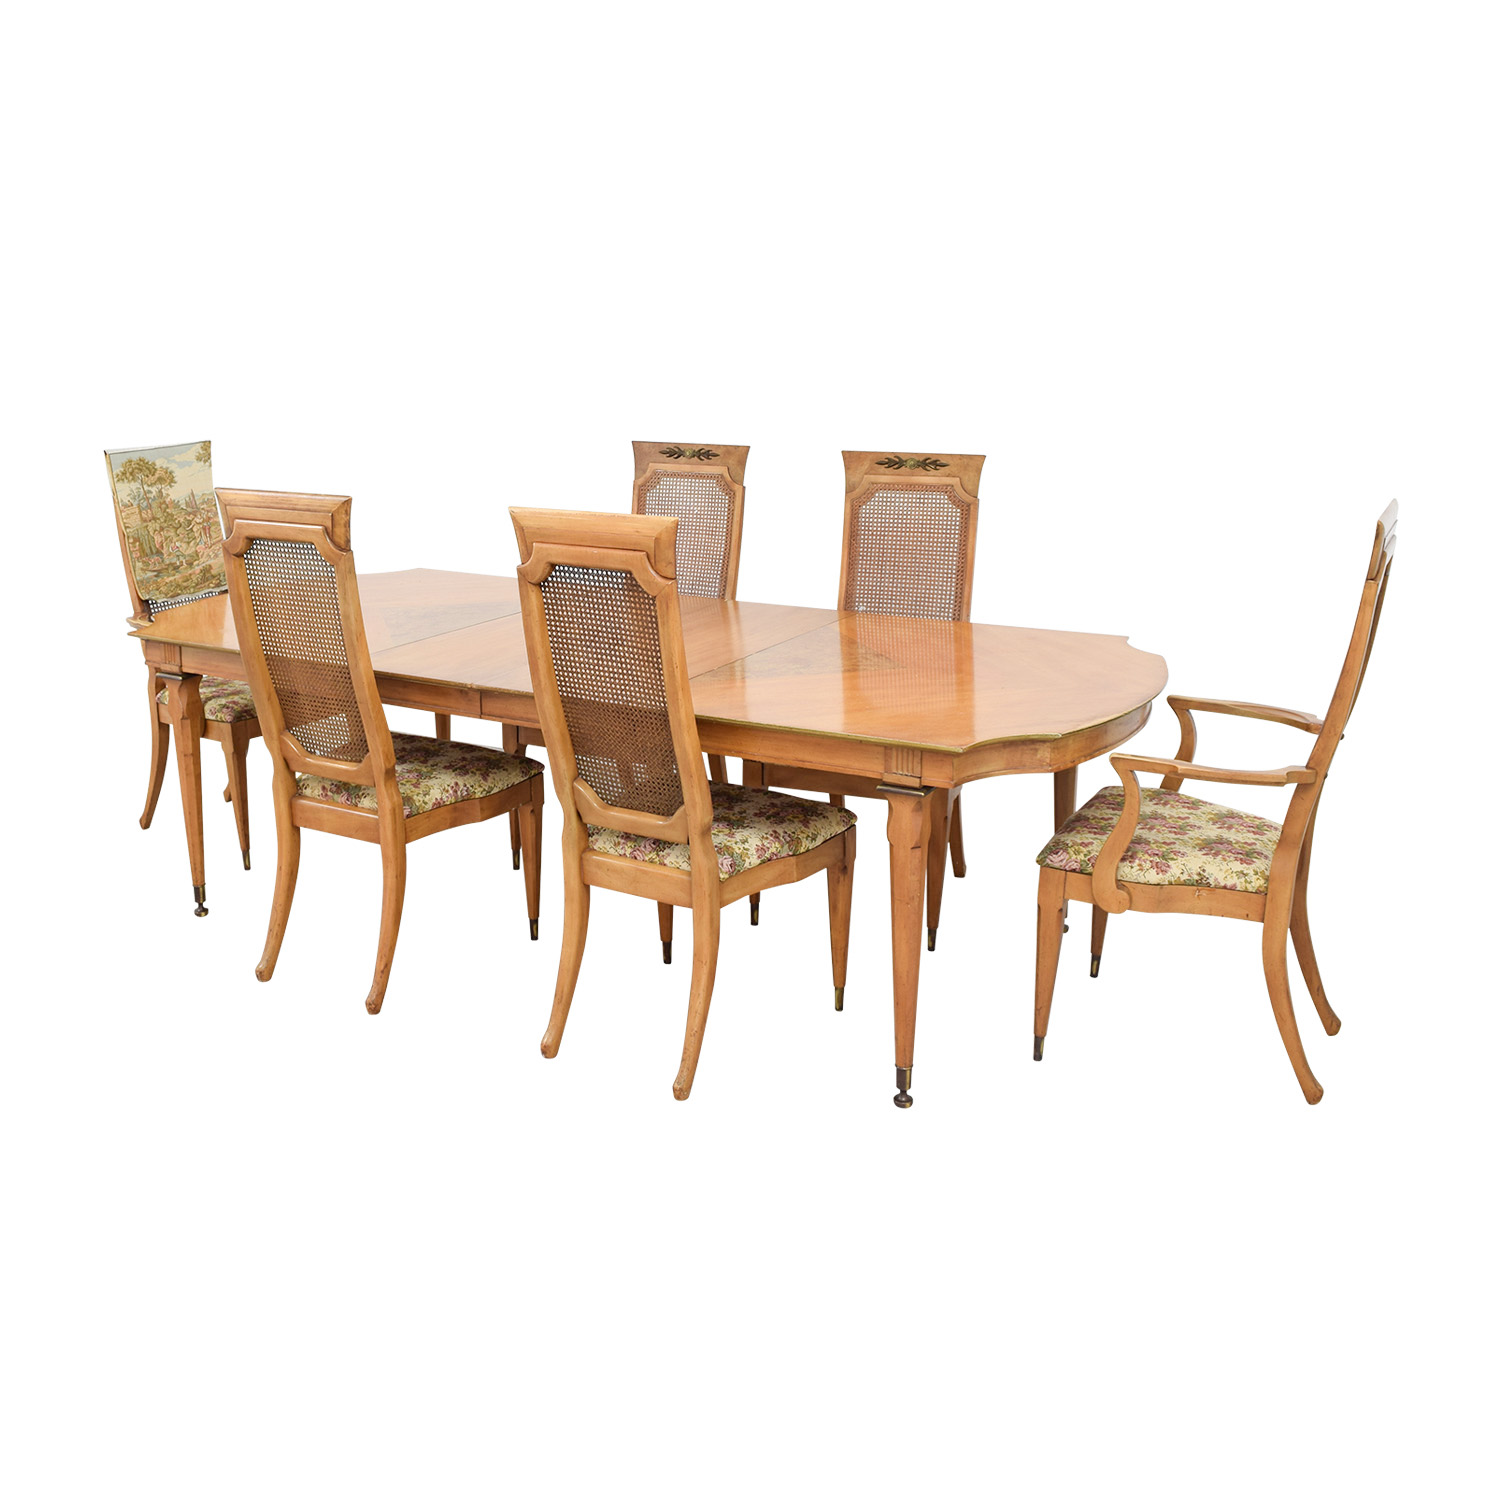 Second Hand Wood Sala Set 90 Off Merz 1968 Merz 1968 Wood Dining Set With Floral